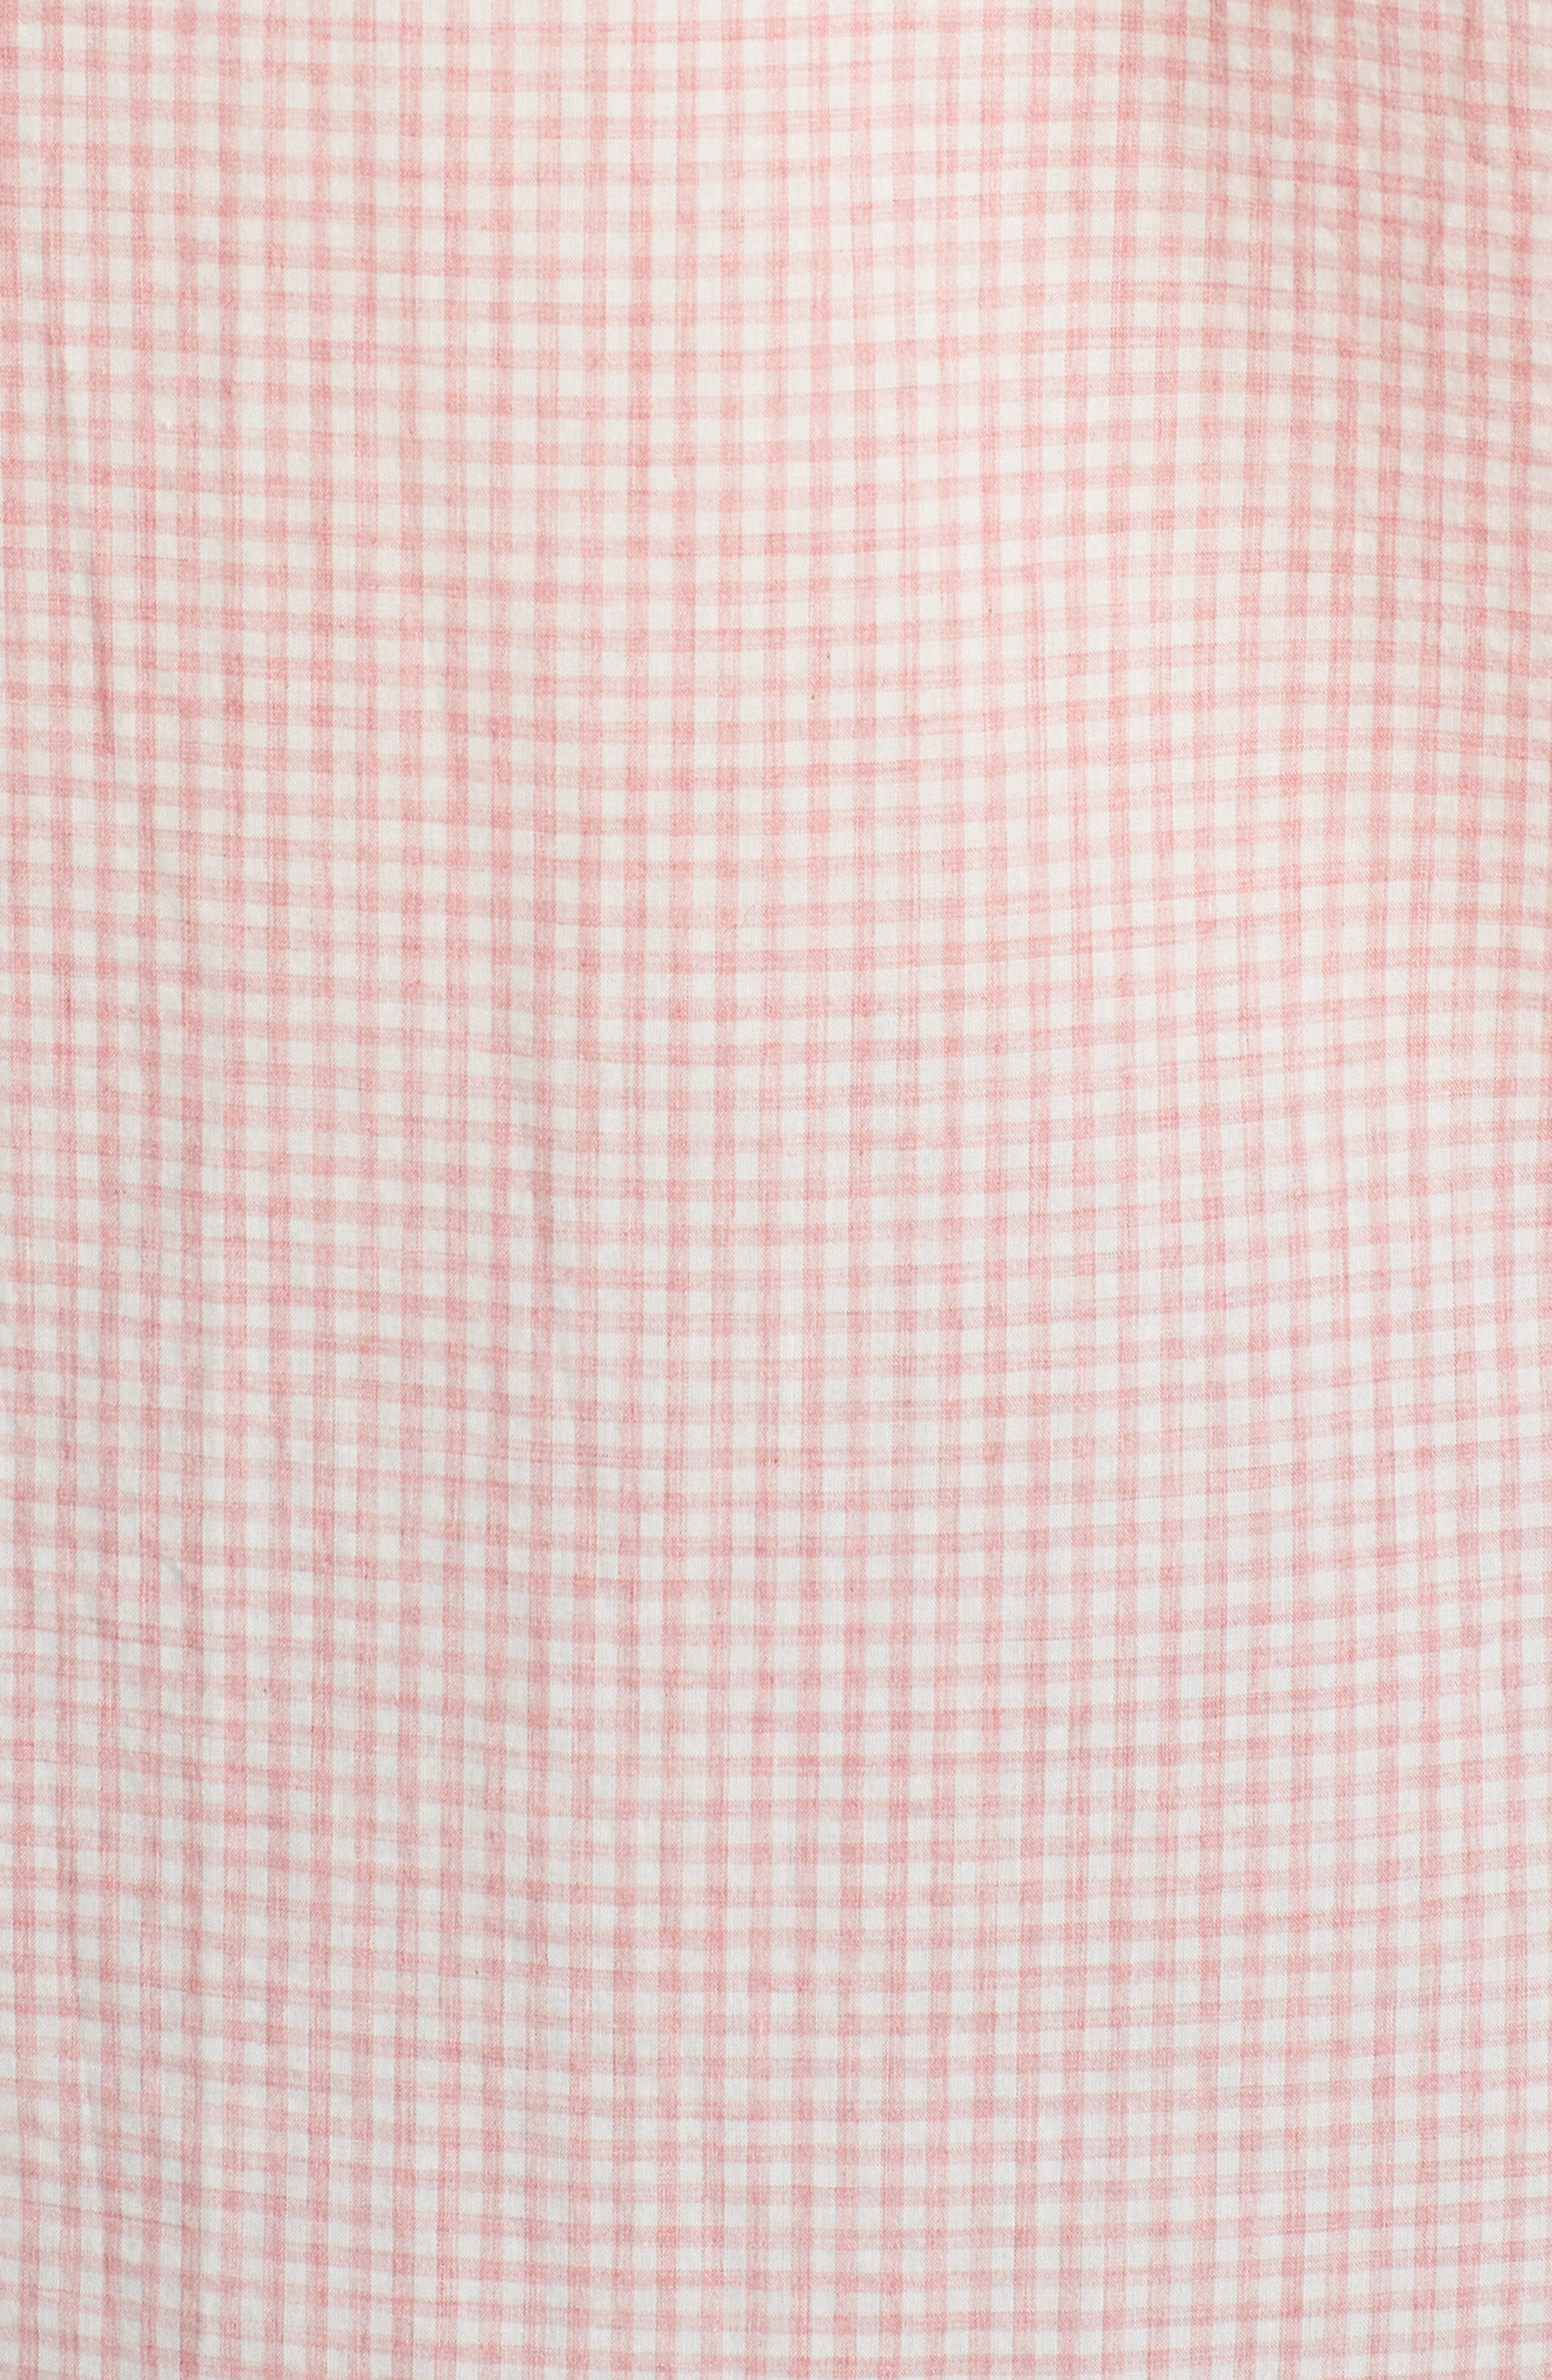 Summerweight Slim Fit Check Sport Shirt,                             Alternate thumbnail 5, color,                             Mini Gingham - Heather Rose